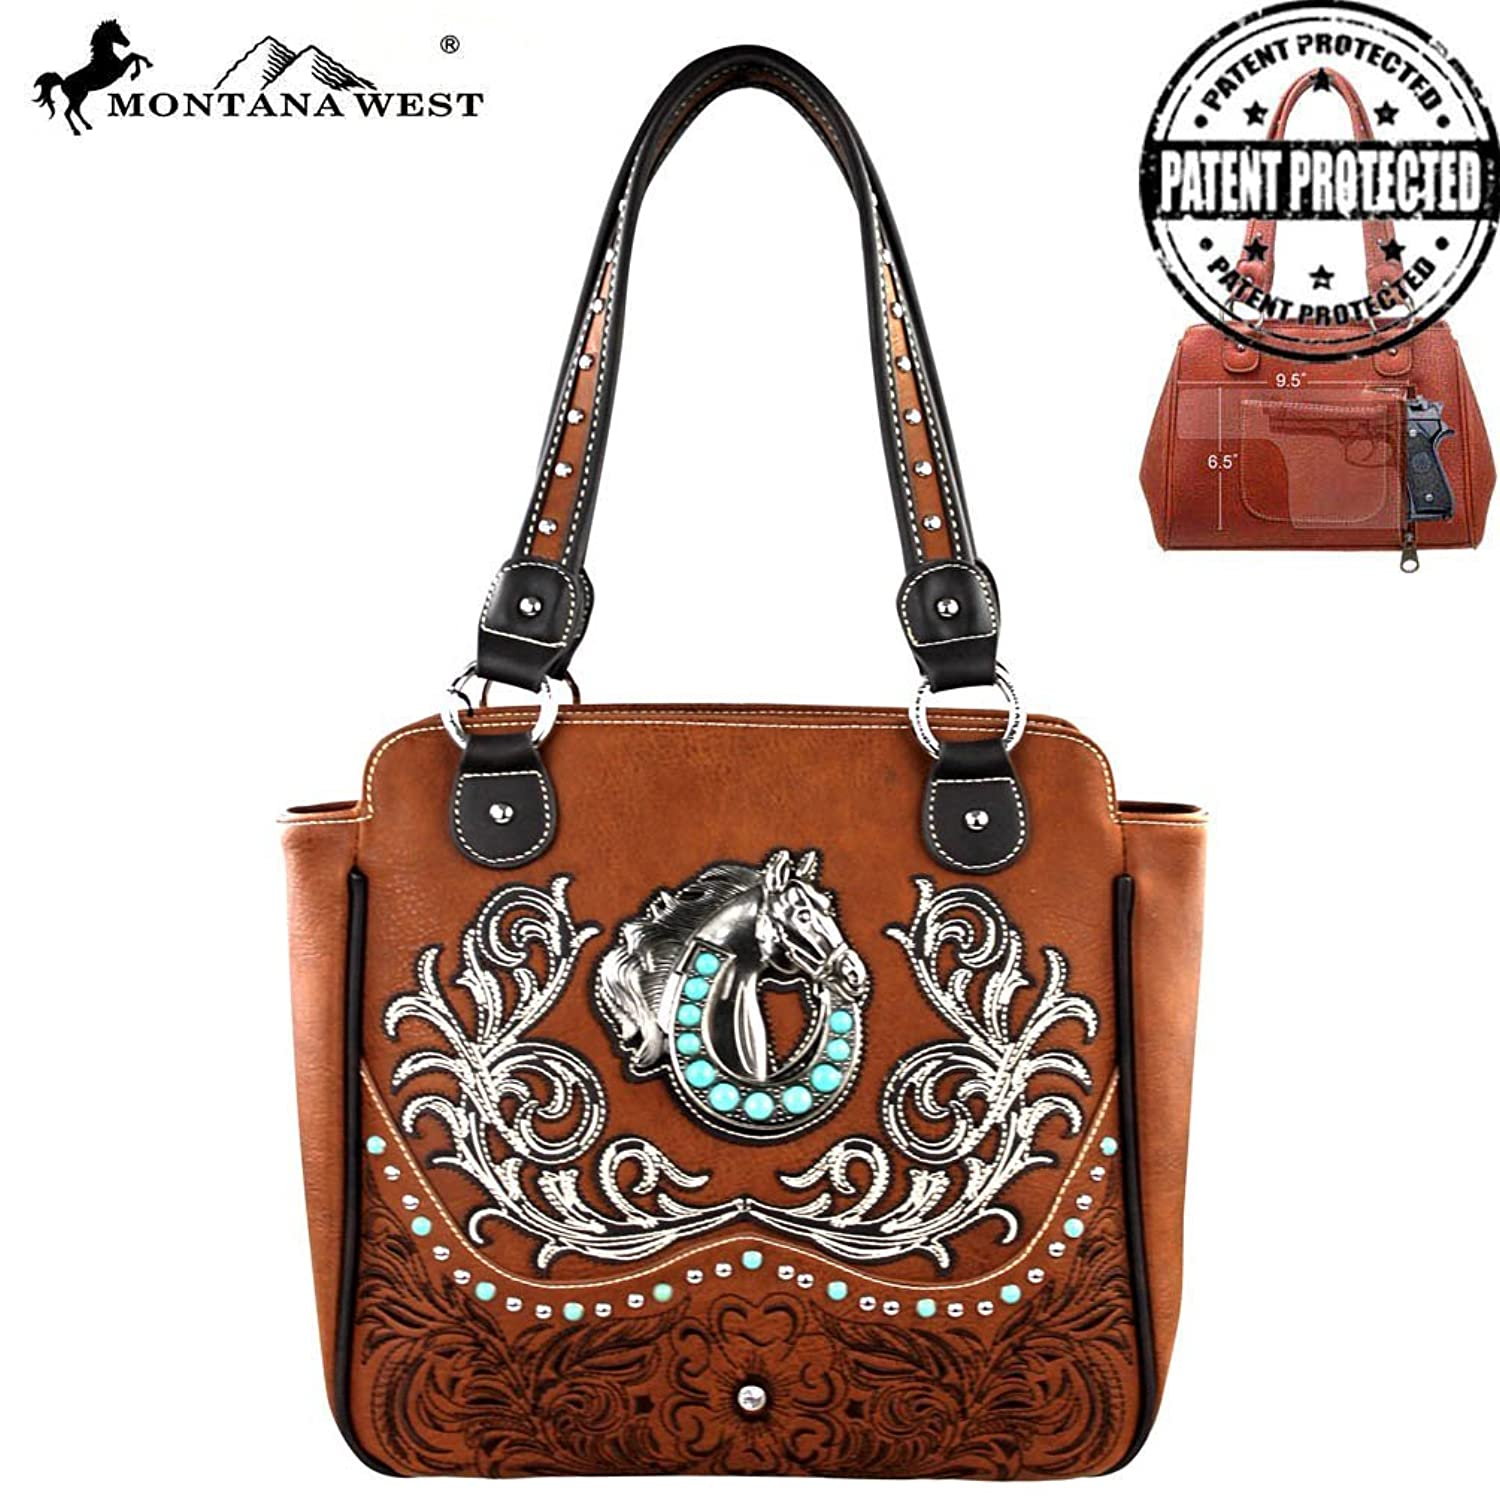 MW254G-8350 Montana West Concealed Handgun Collection Handbag